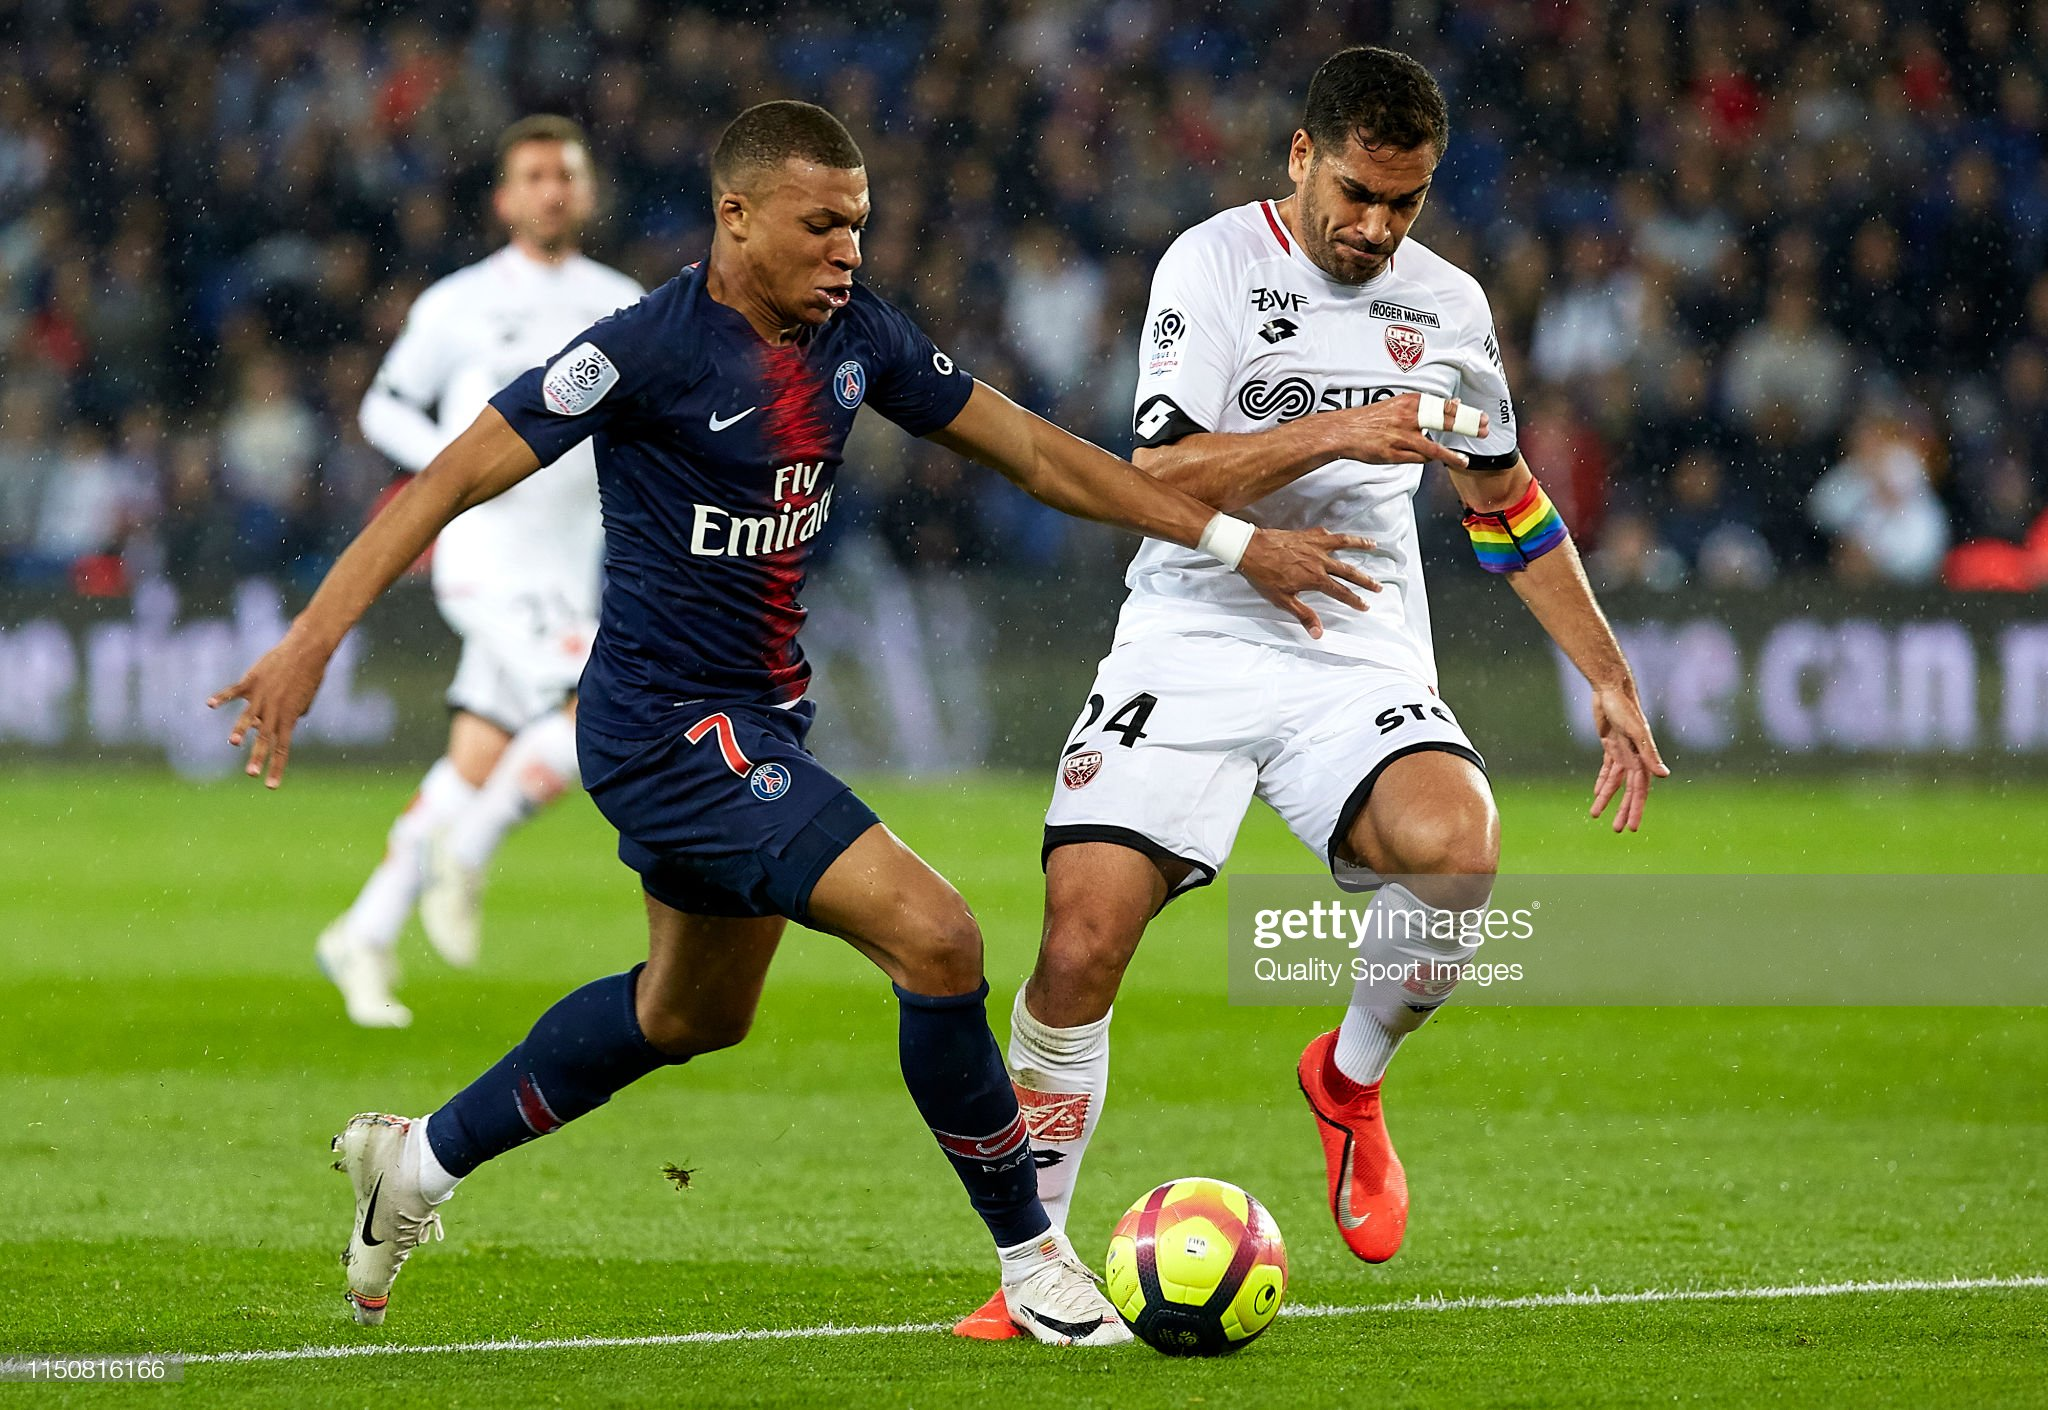 Dijon v PSG preview, prediction and odds